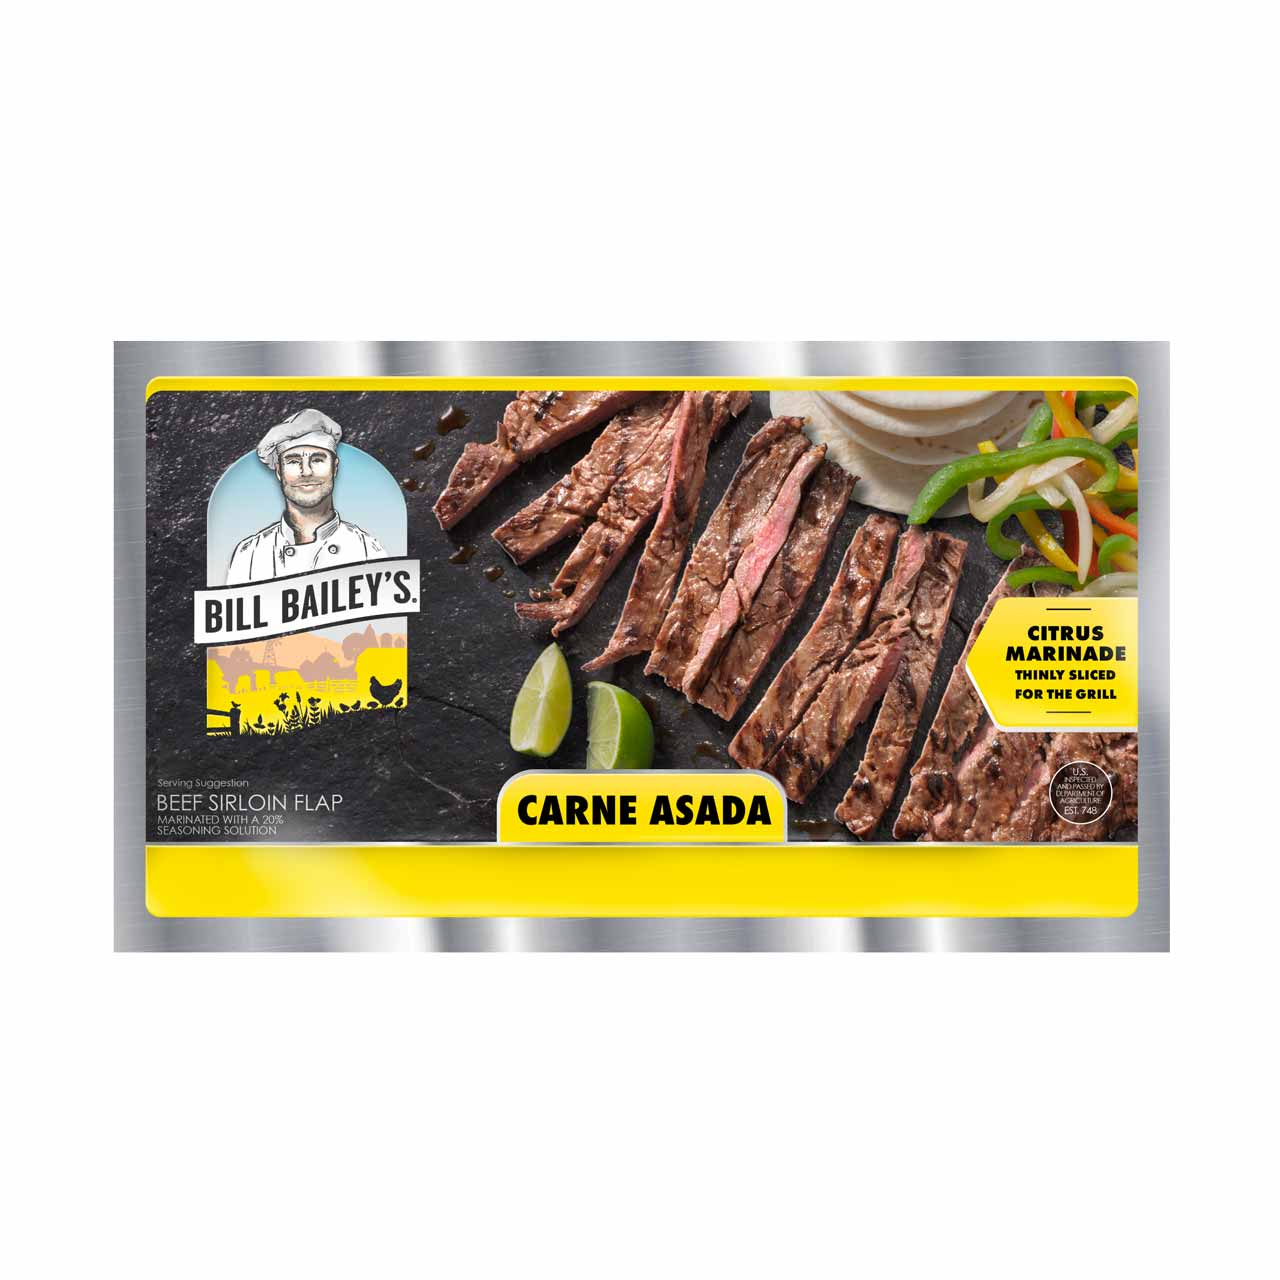 Carne Asada Beef Sirloin Flap Packaging